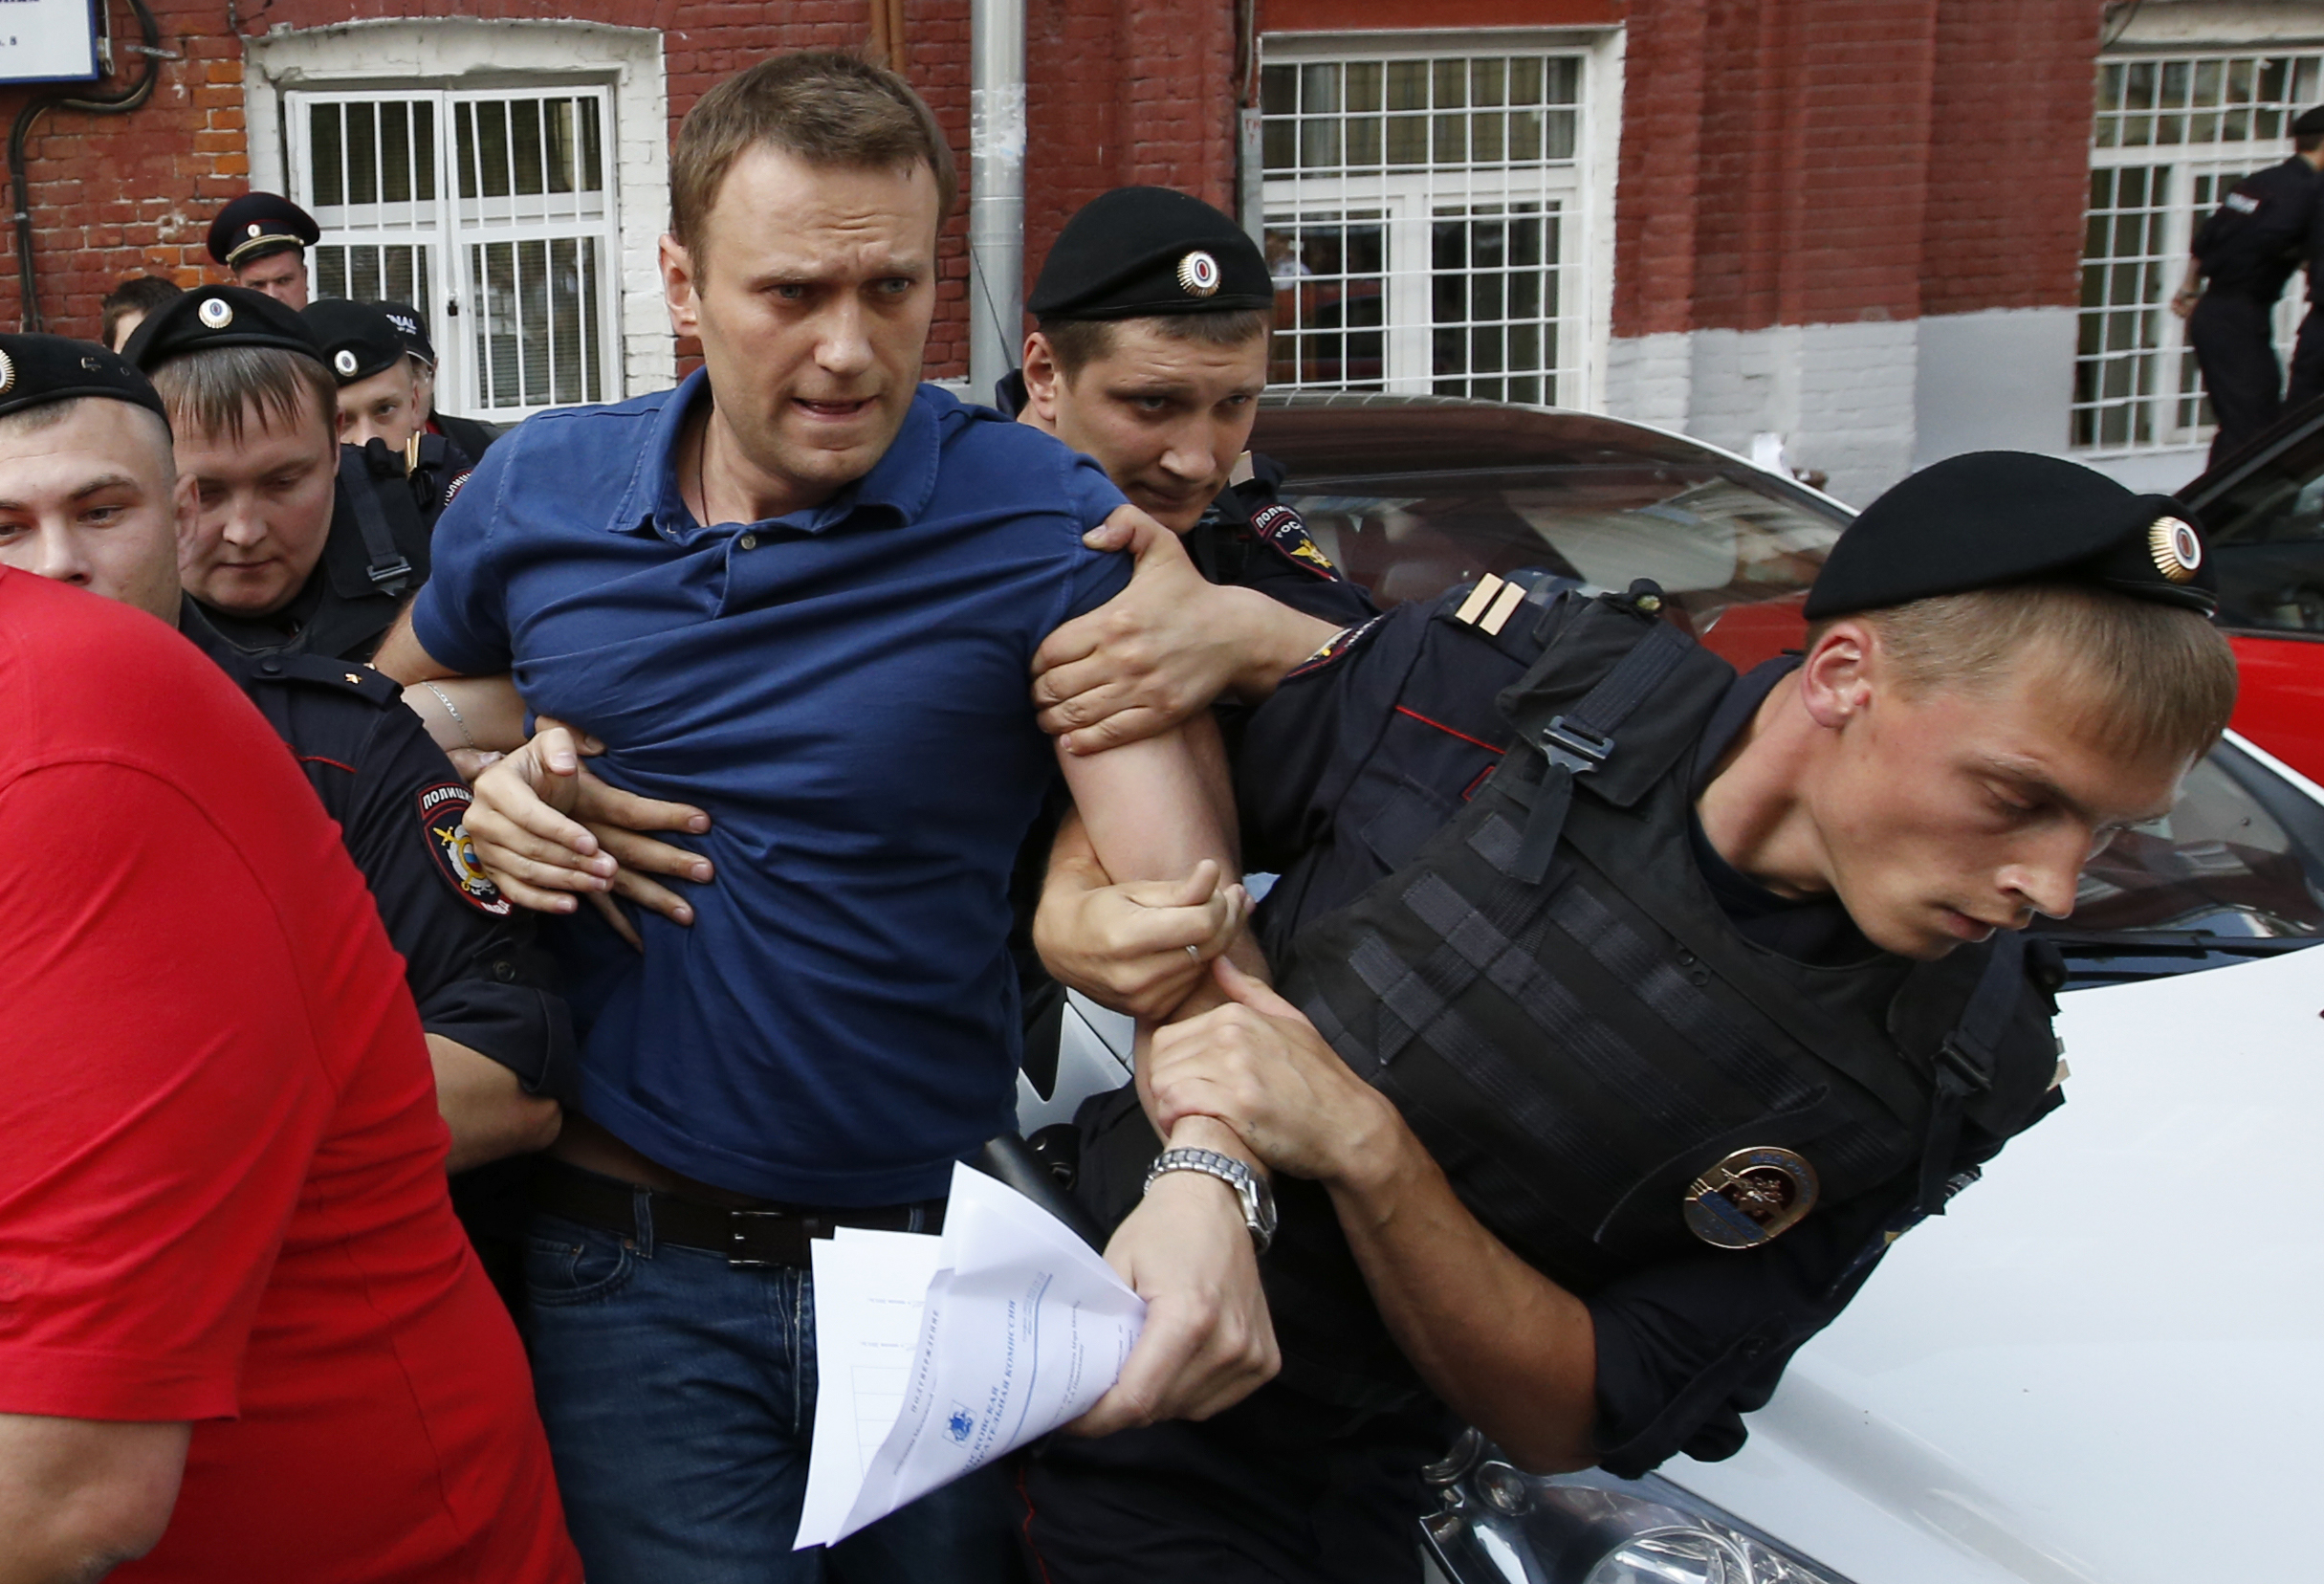 "Policemen detain Russian opposition leader and anti-corruption blogger Alexei Navalny (C), after he visited the city's election commission office to submit documents to get registered as a mayoral election candidate, in Moscow July 10, 2013. Protest leader Alexei Navalny vowed he would destroy the political system under President Vladimir Putin that was ""sucking the blood out of Russia"", after state prosecutors demanded he be jailed for six years on theft charges. Other opposition figures say the trial was intended to prevent Navalny from fulfilling his dream of becoming president and, before that, running for Moscow mayor in September. Navalny was detained on a charge of organizing an unsanctioned rally near the city's election commission office and was then released in less than half an hour. REUTERS/Grigory Dukor"